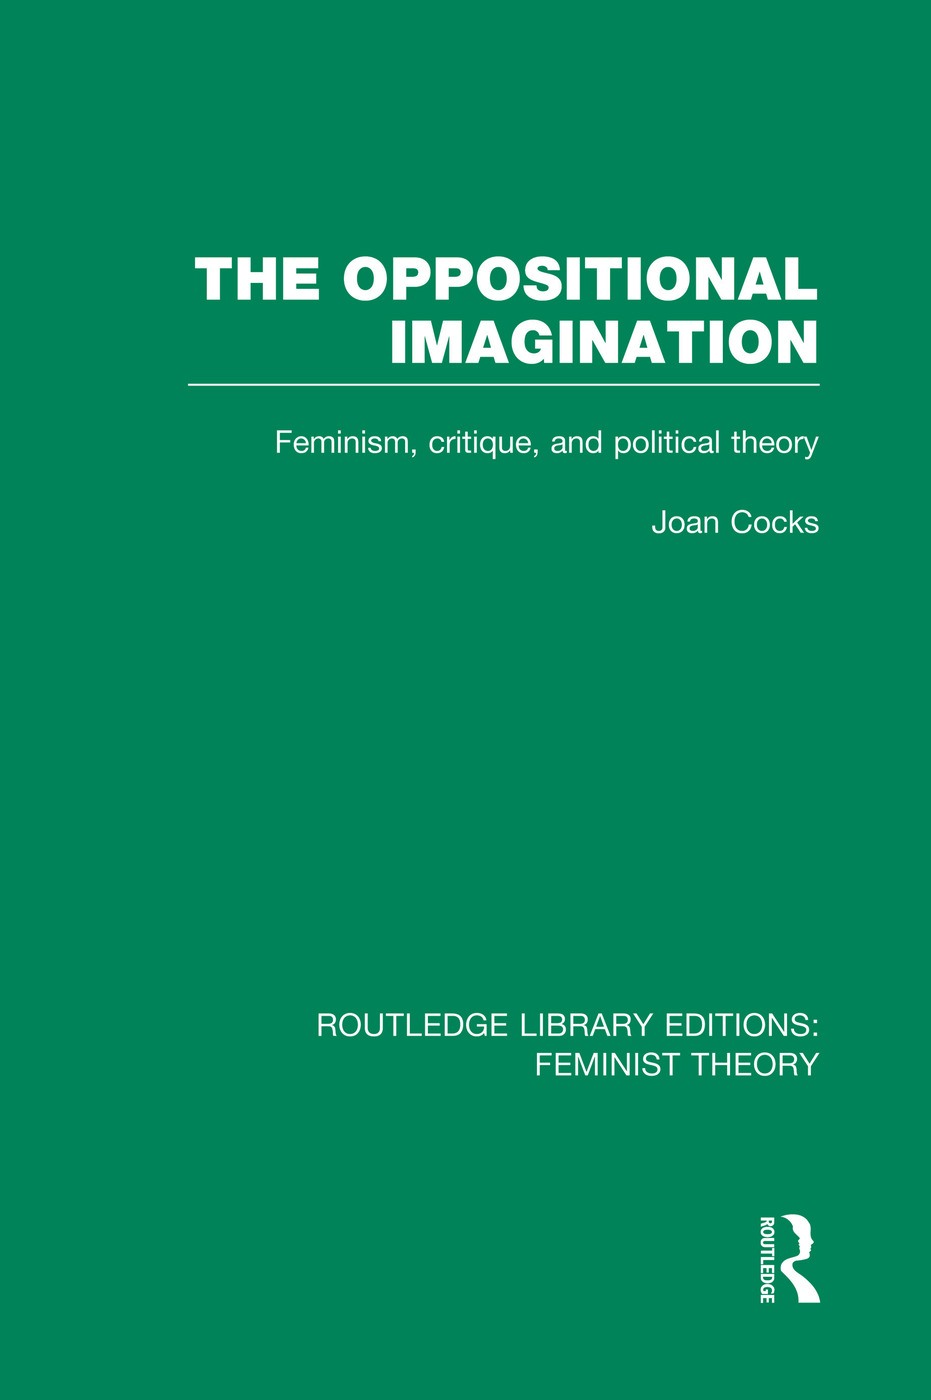 The Oppositional Imagination (RLE Feminist Theory): Feminism, Critique and Political Theory book cover